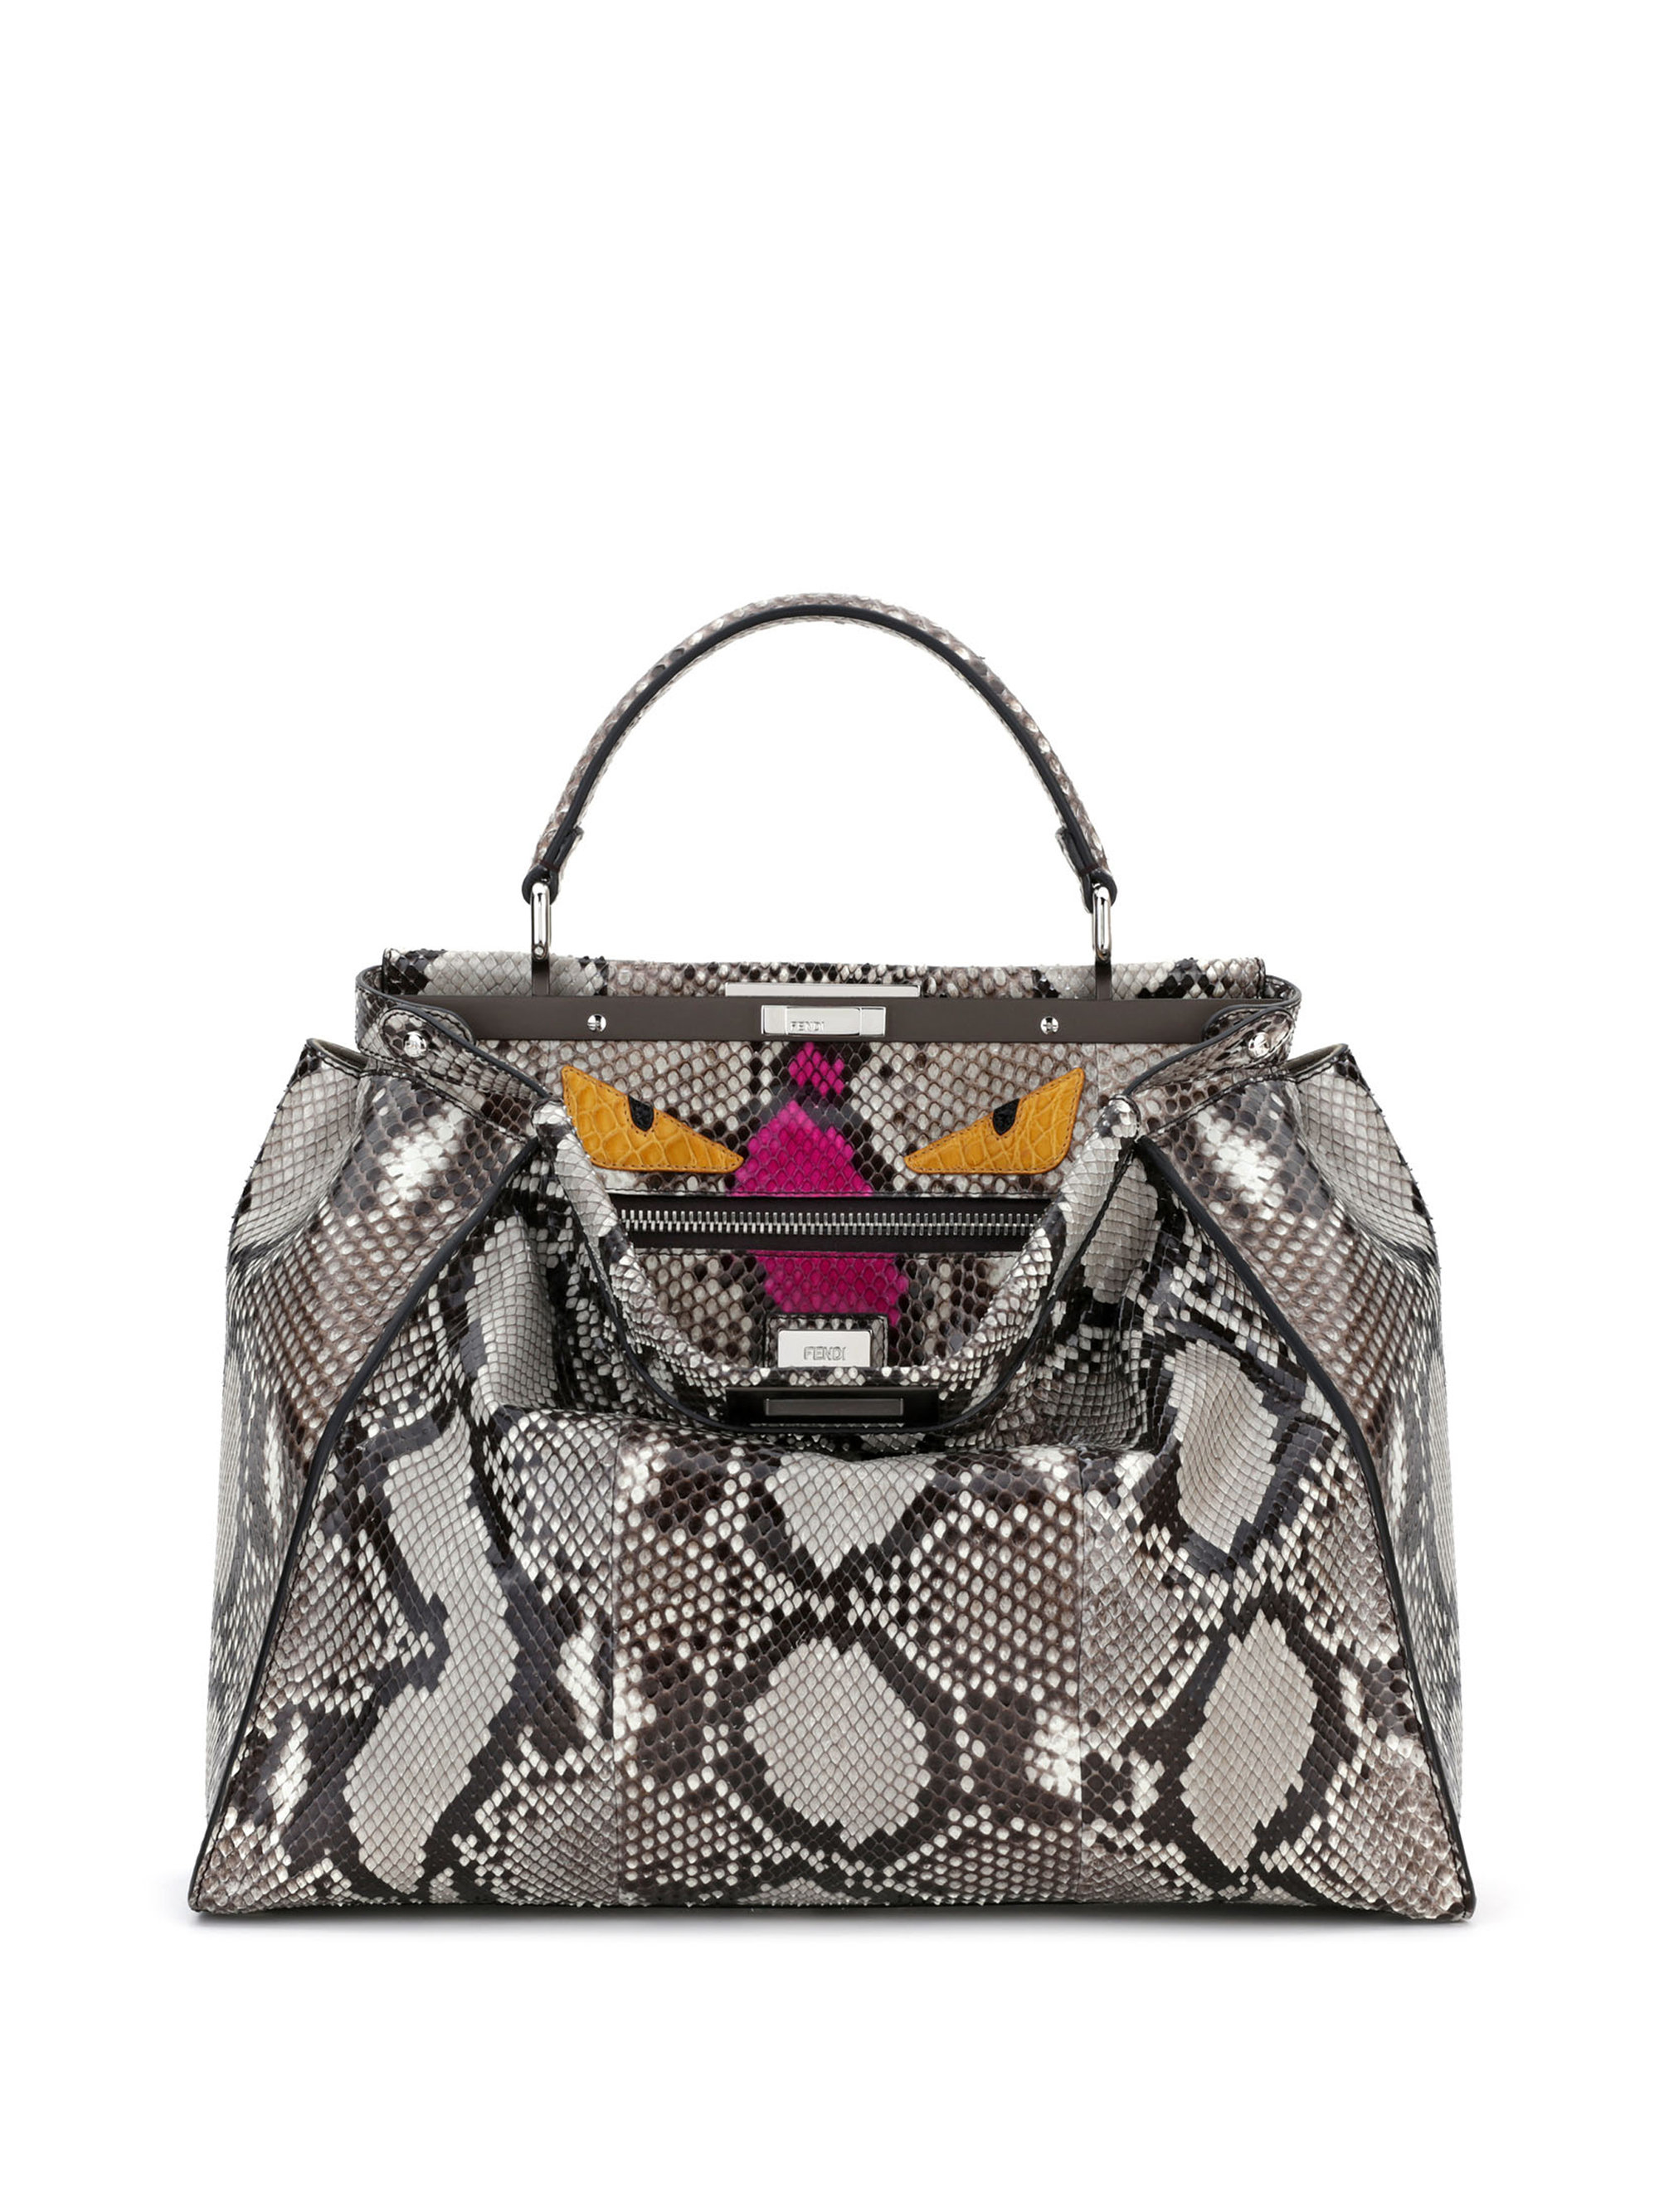 60365220f3cb Lyst - Fendi Peekaboo Python Leather Satchel in Gray